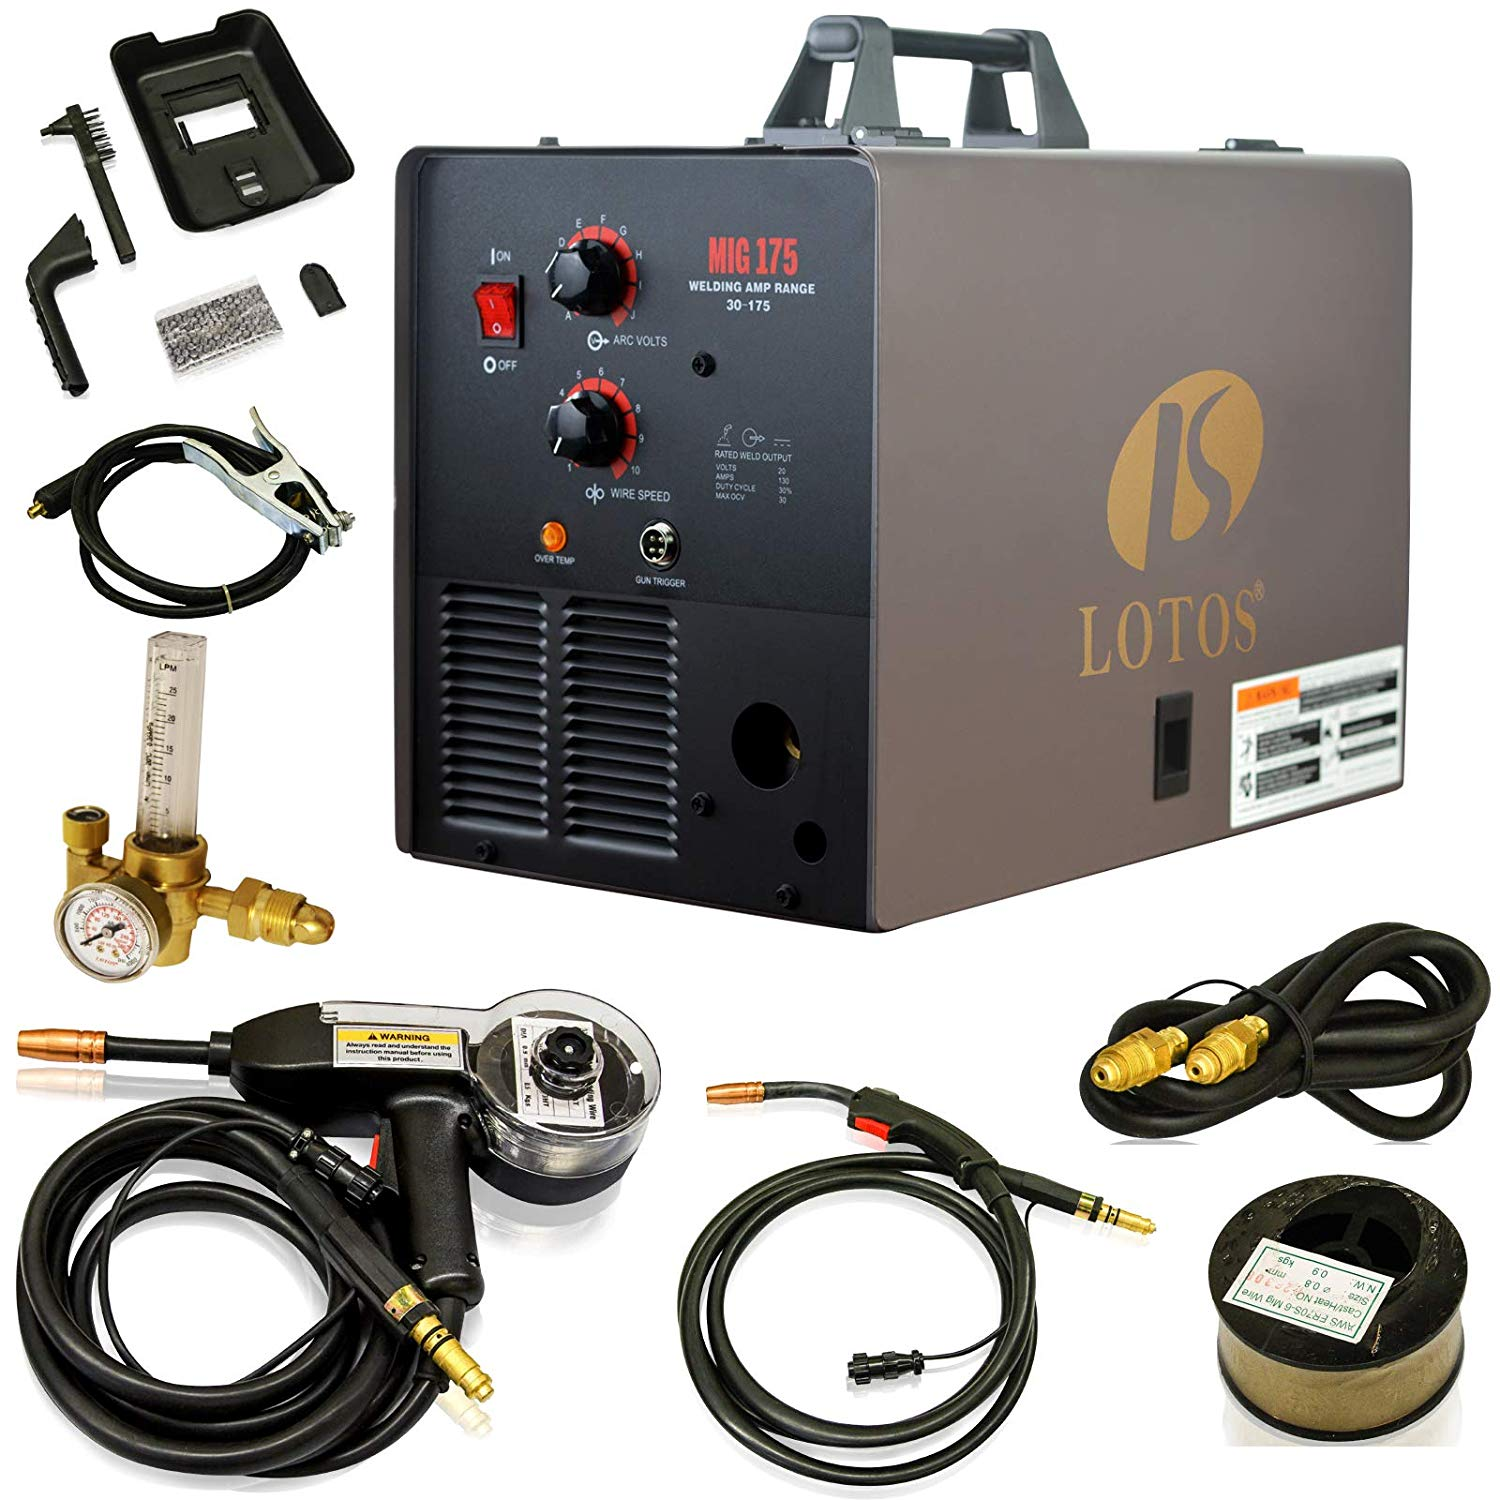 LOTOS Mig 175 Welder Review